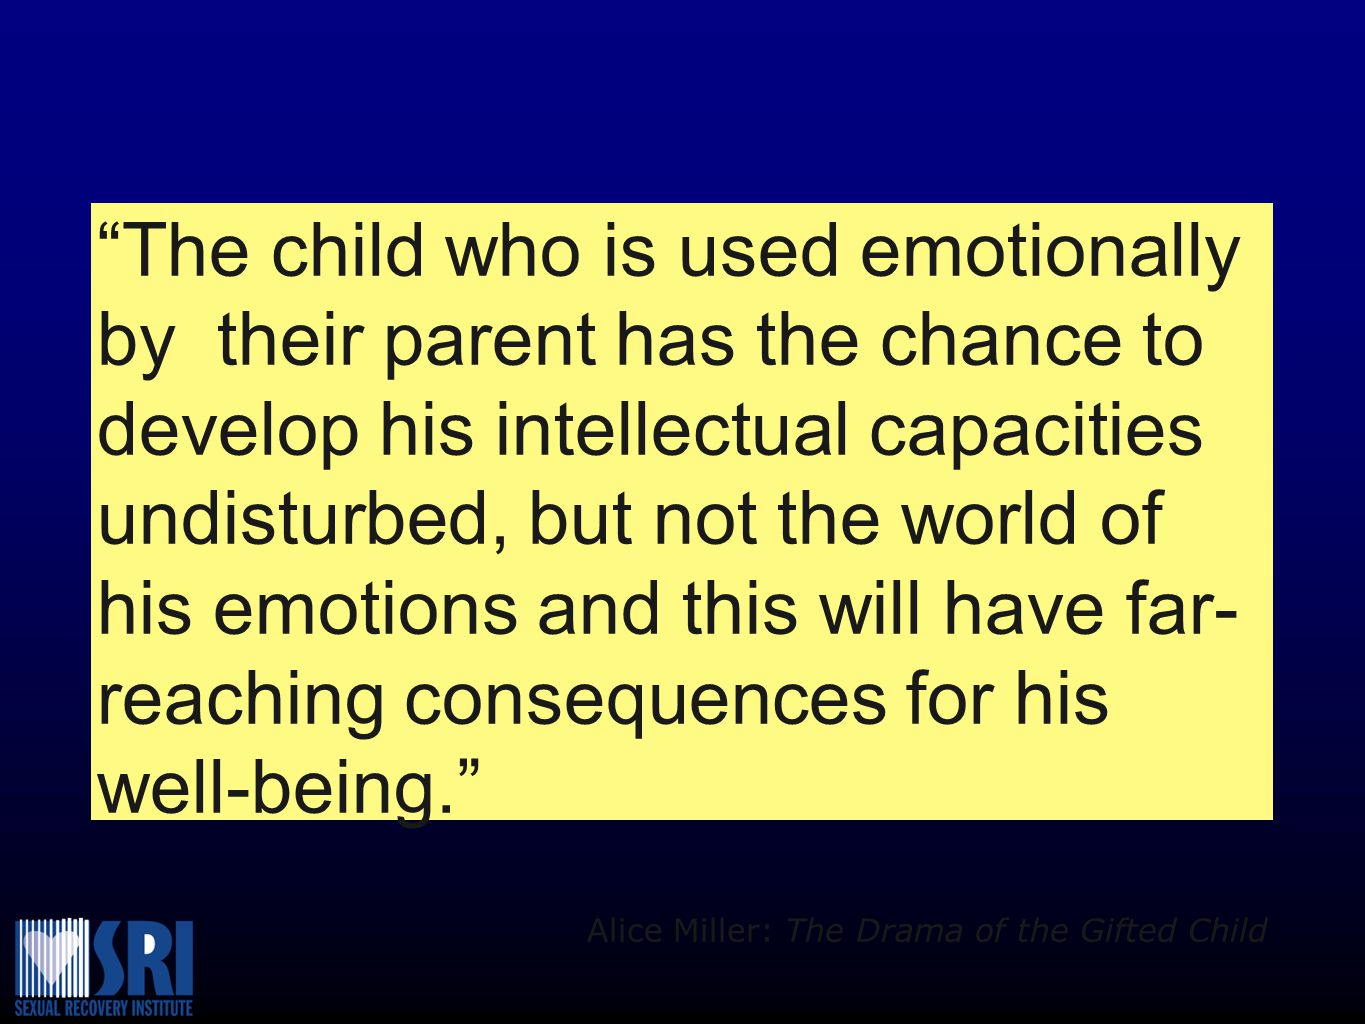 The child who is used emotionally by their parent has the chance to develop his intellectual capacities undisturbed, but not the world of his emotions and this will have far-reaching consequences for his well-being.